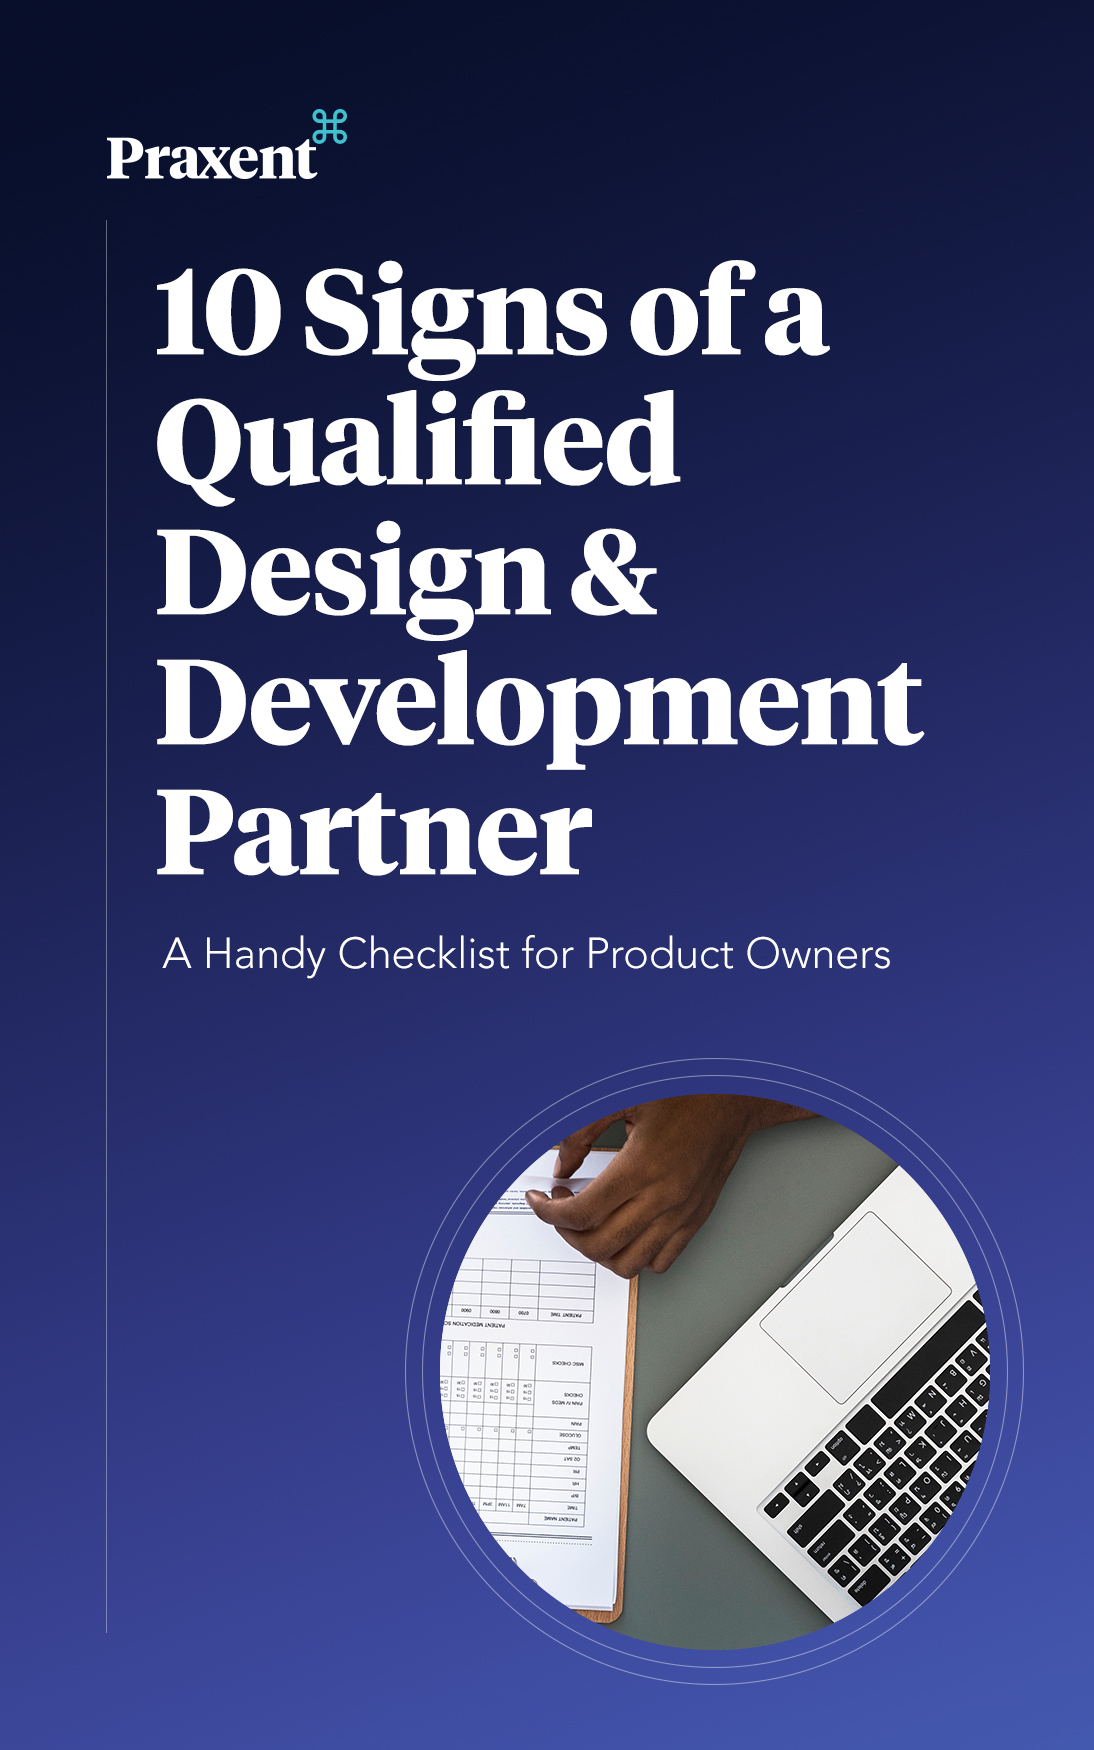 qualifieddesign-cover